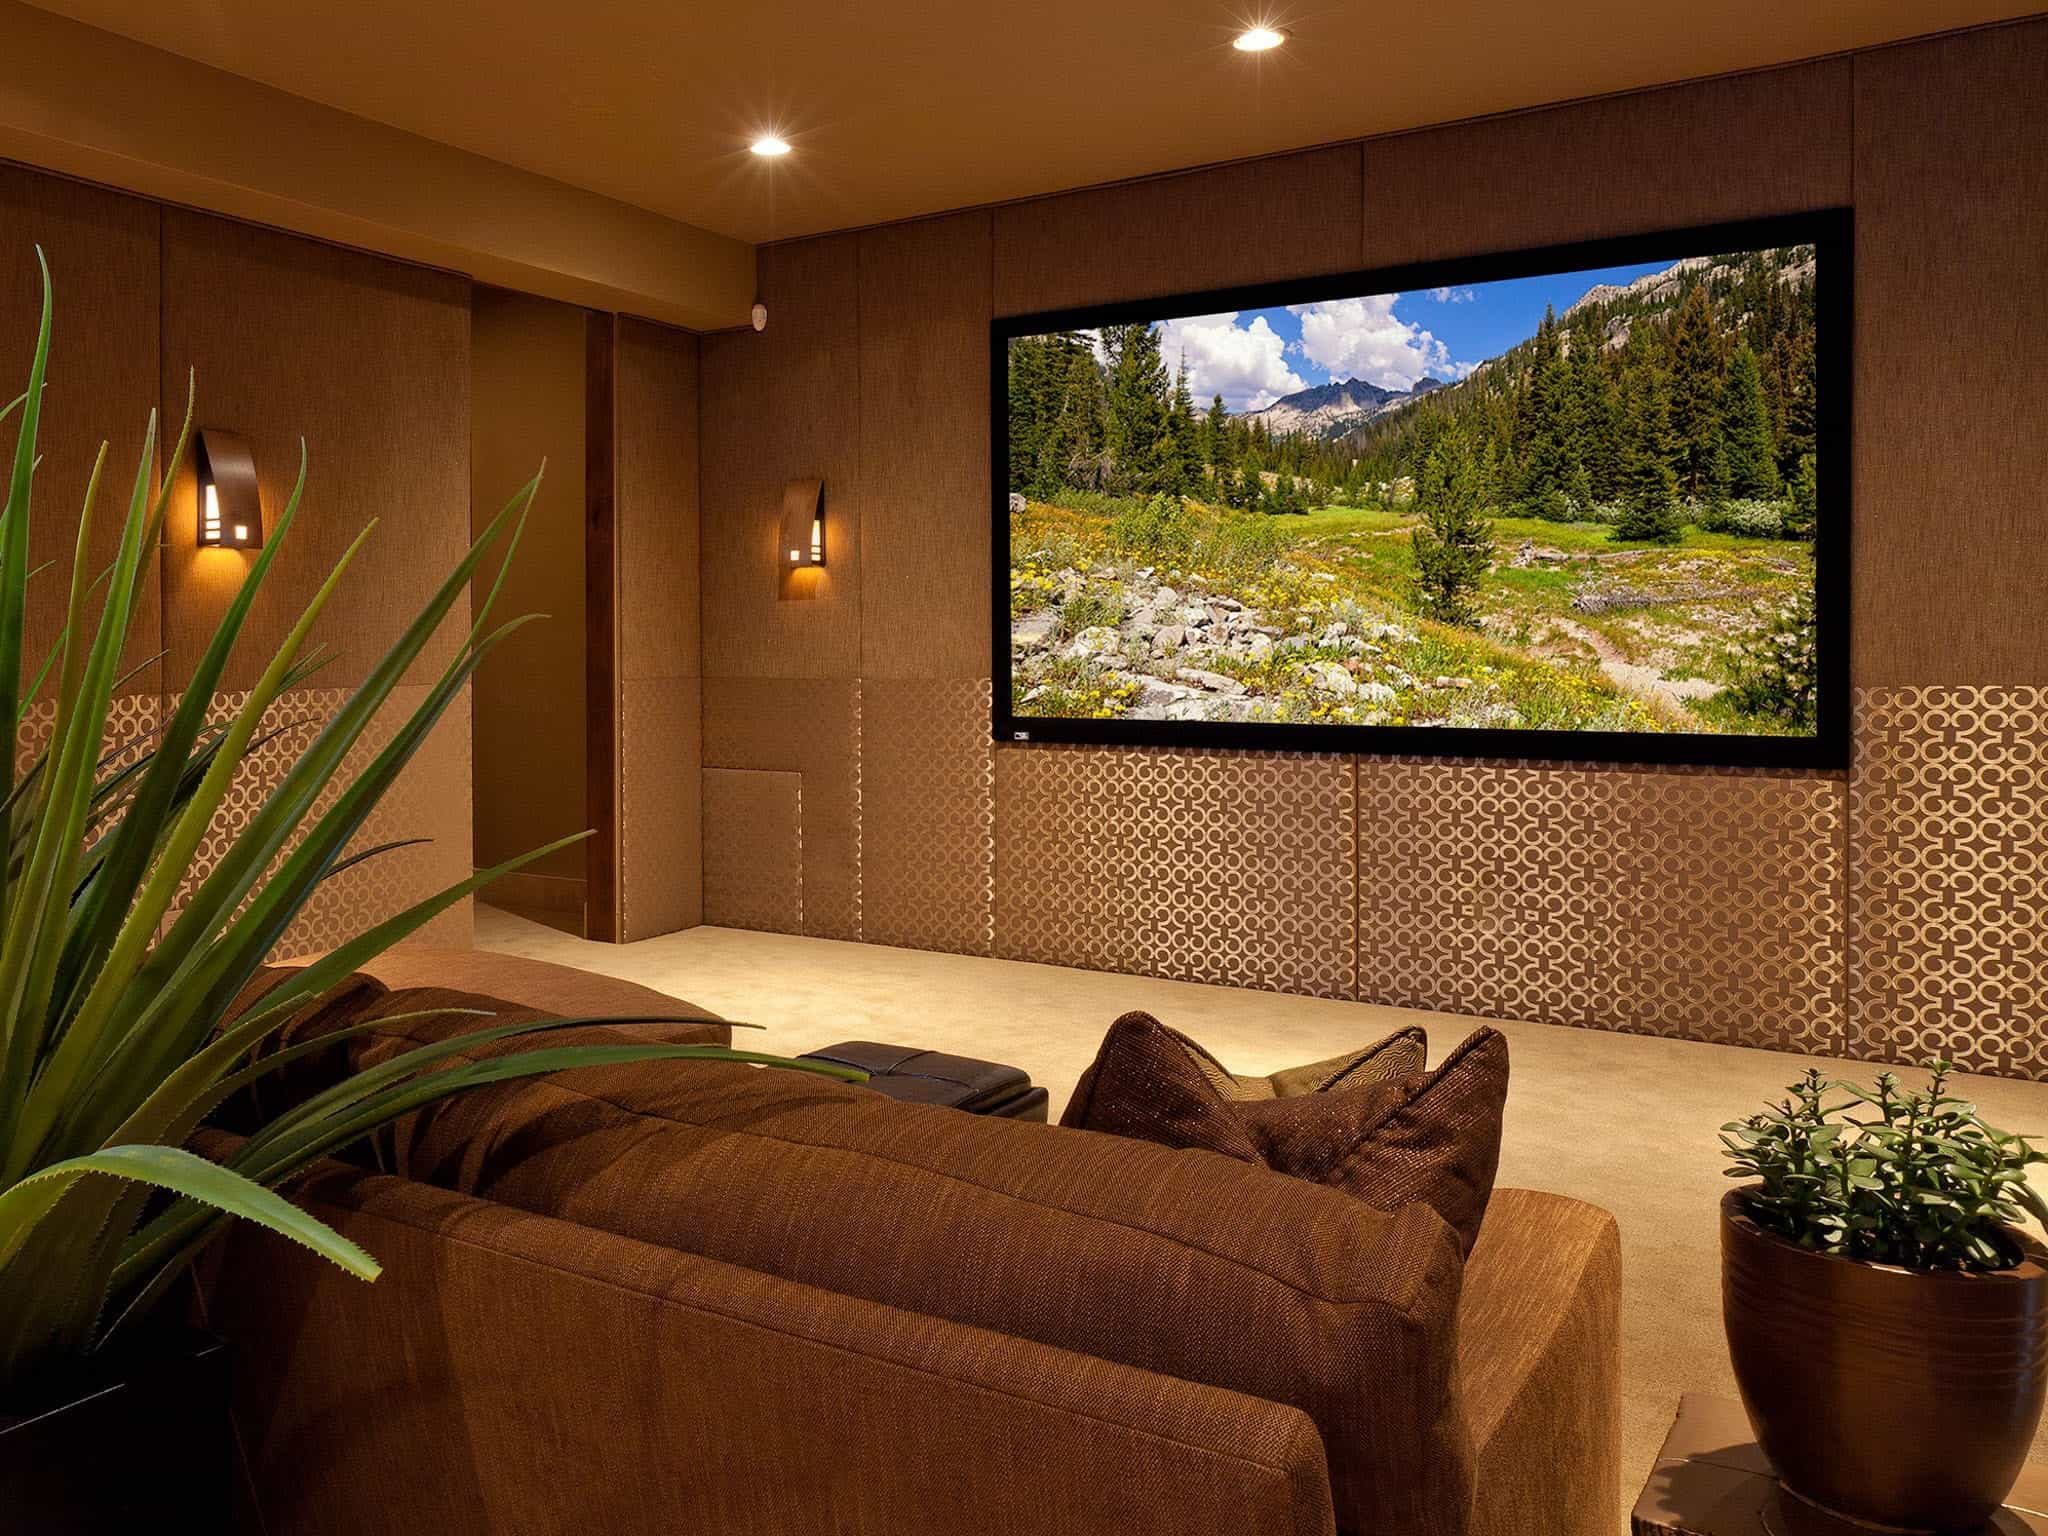 Brown And Gold Contemporary Media Room Cozy Design (Image 4 of 21)